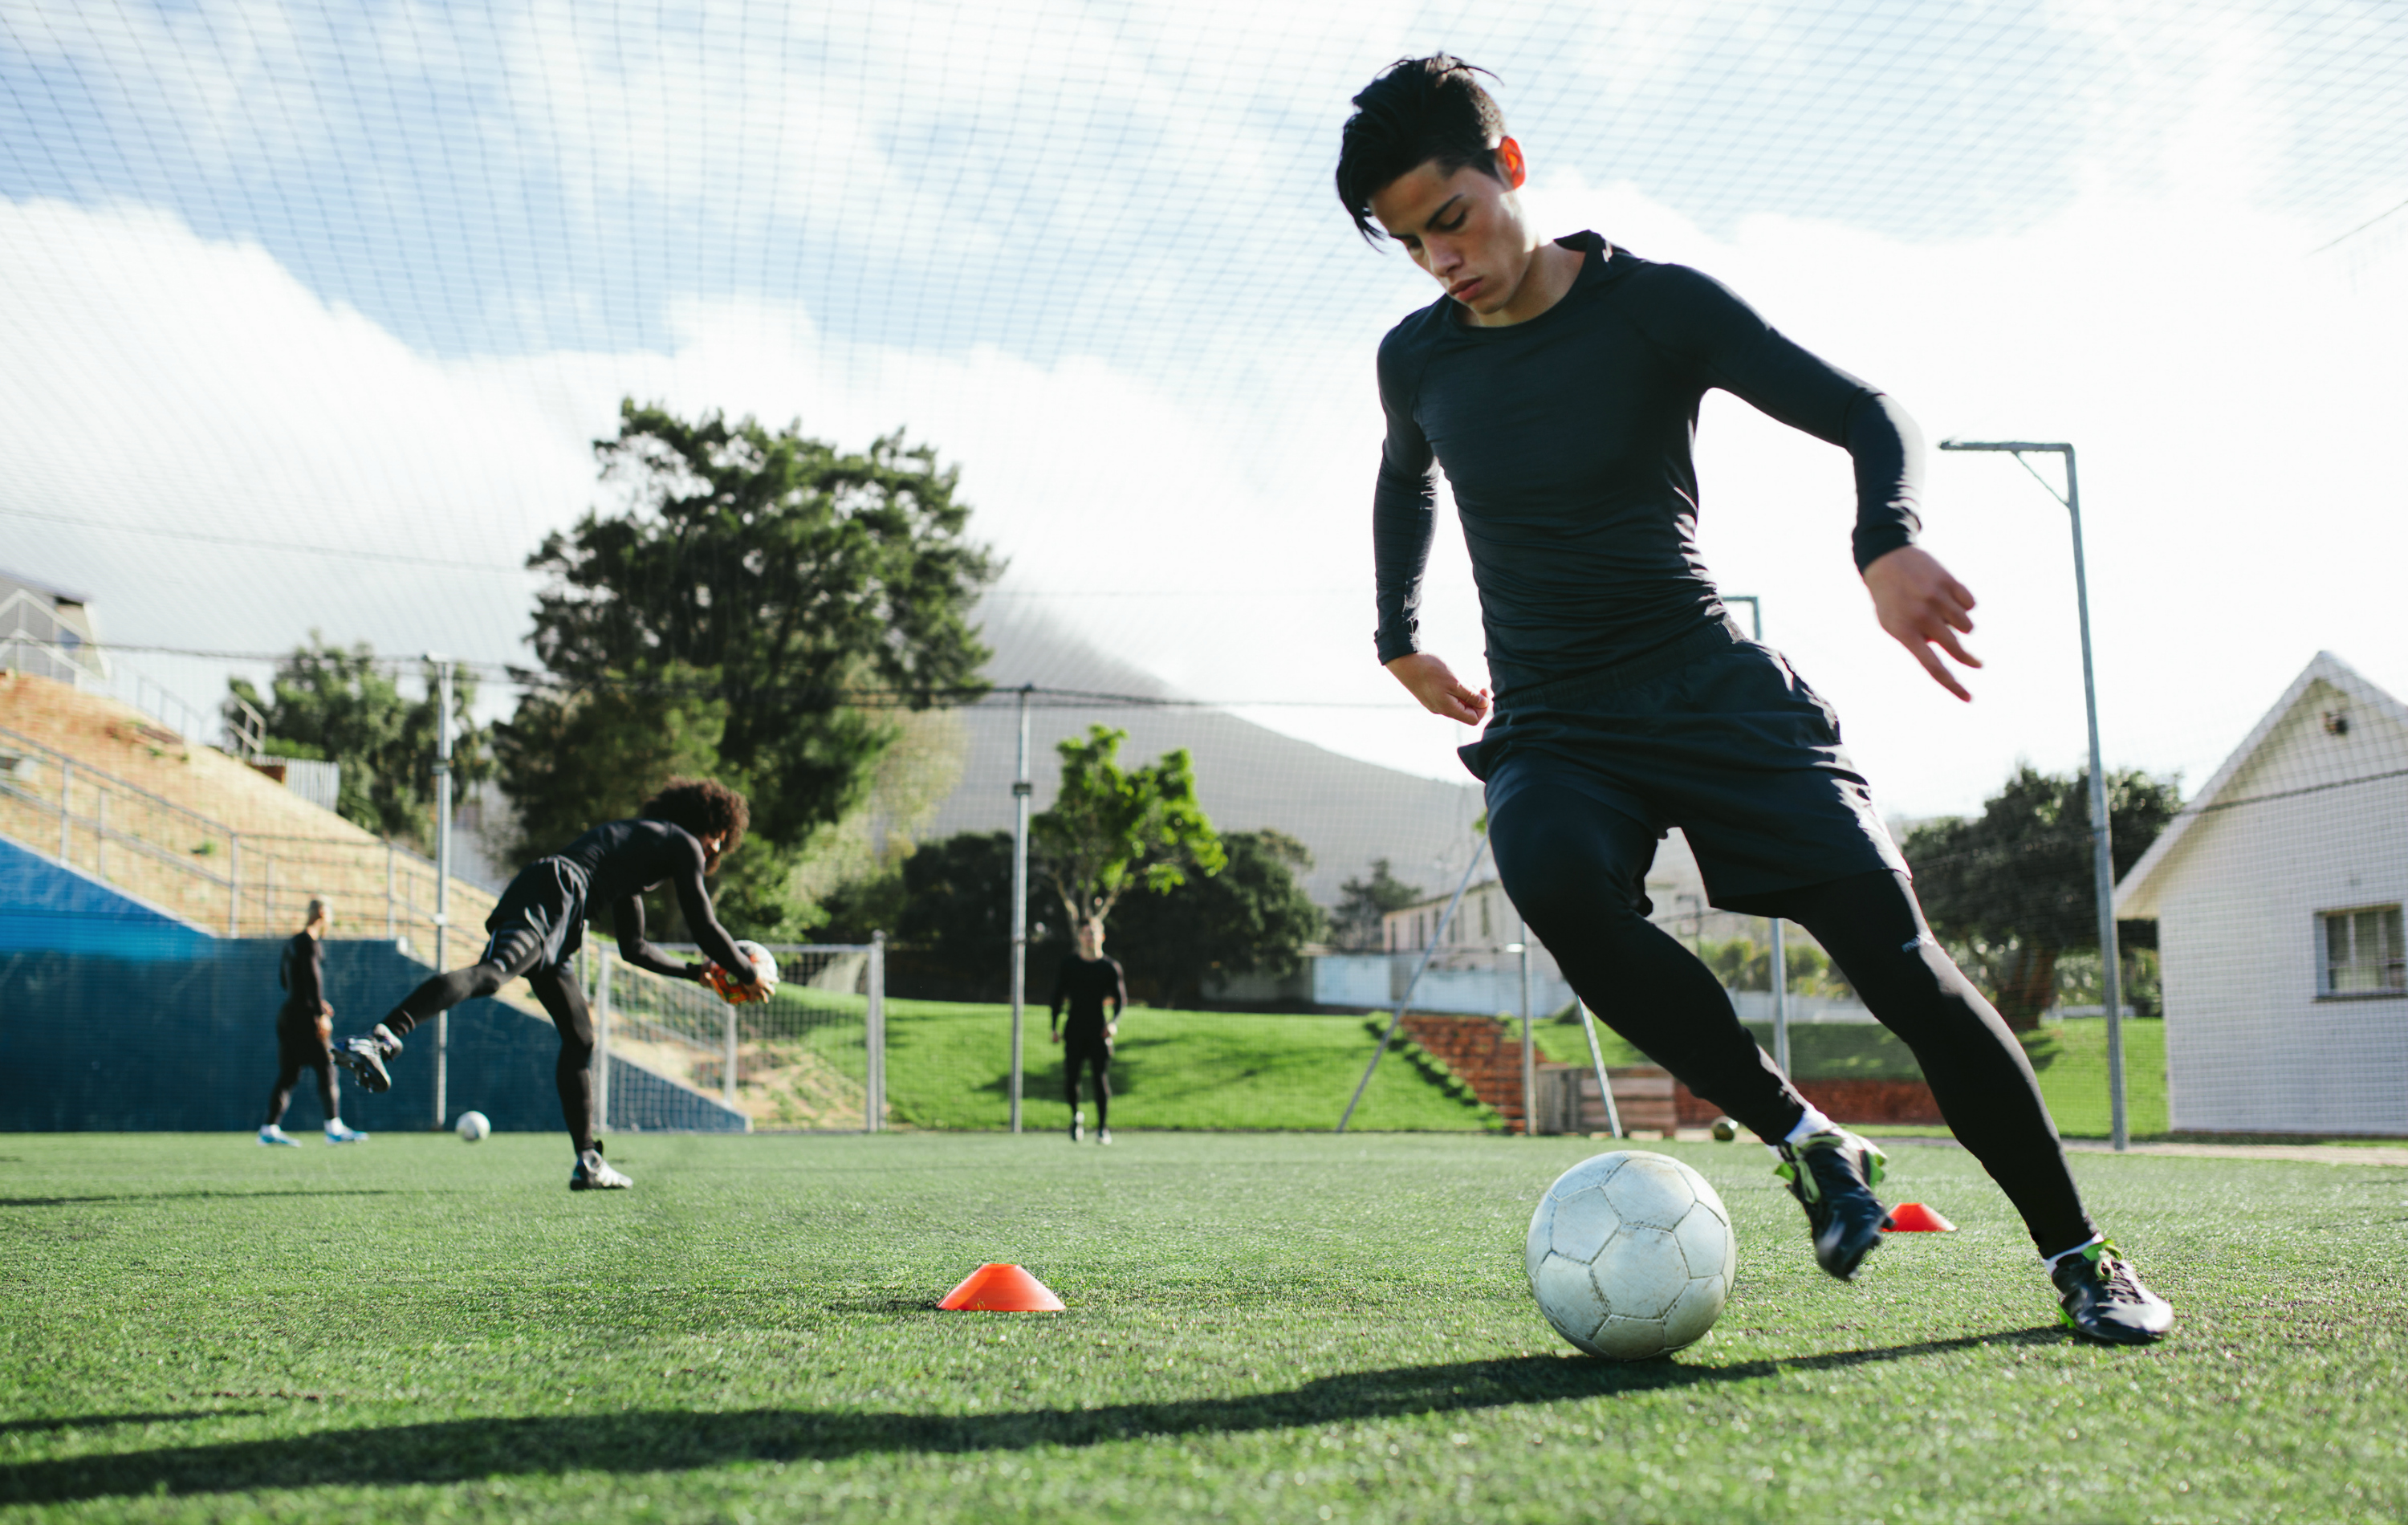 Soccer Players: The Best Soccer Training Equipment For Players (2019